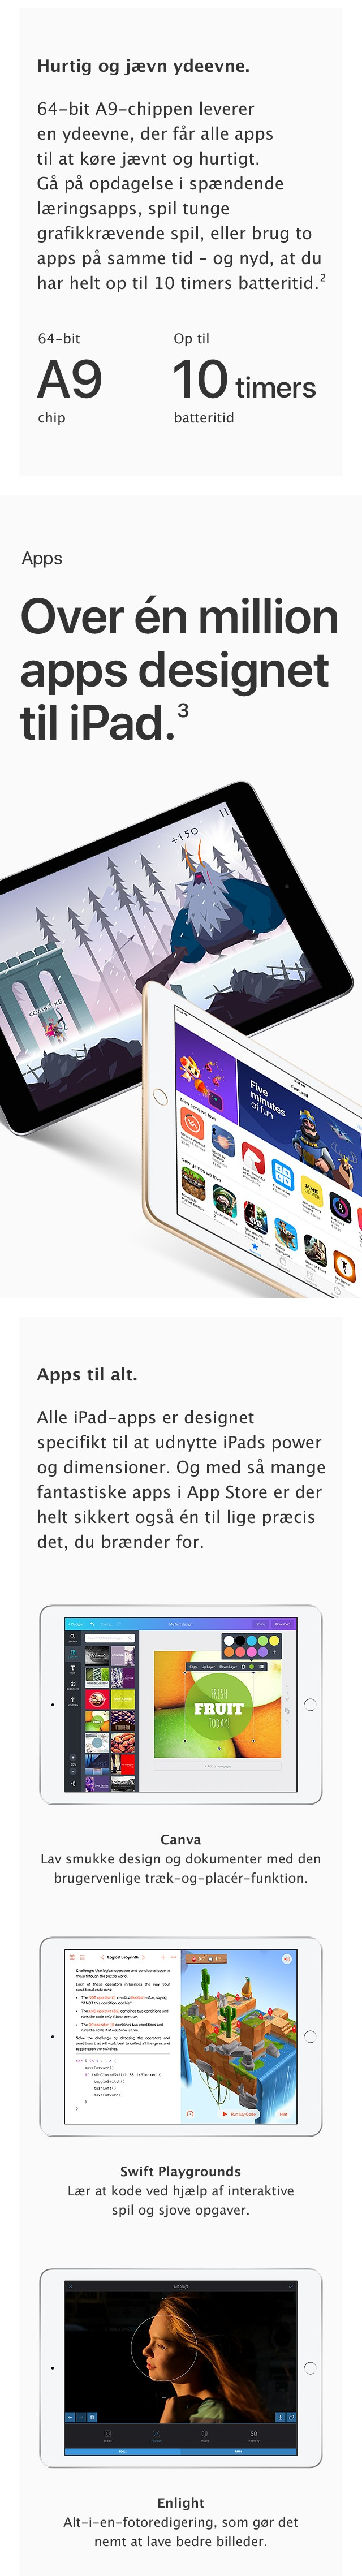 Få over én million apps til den nye iPad